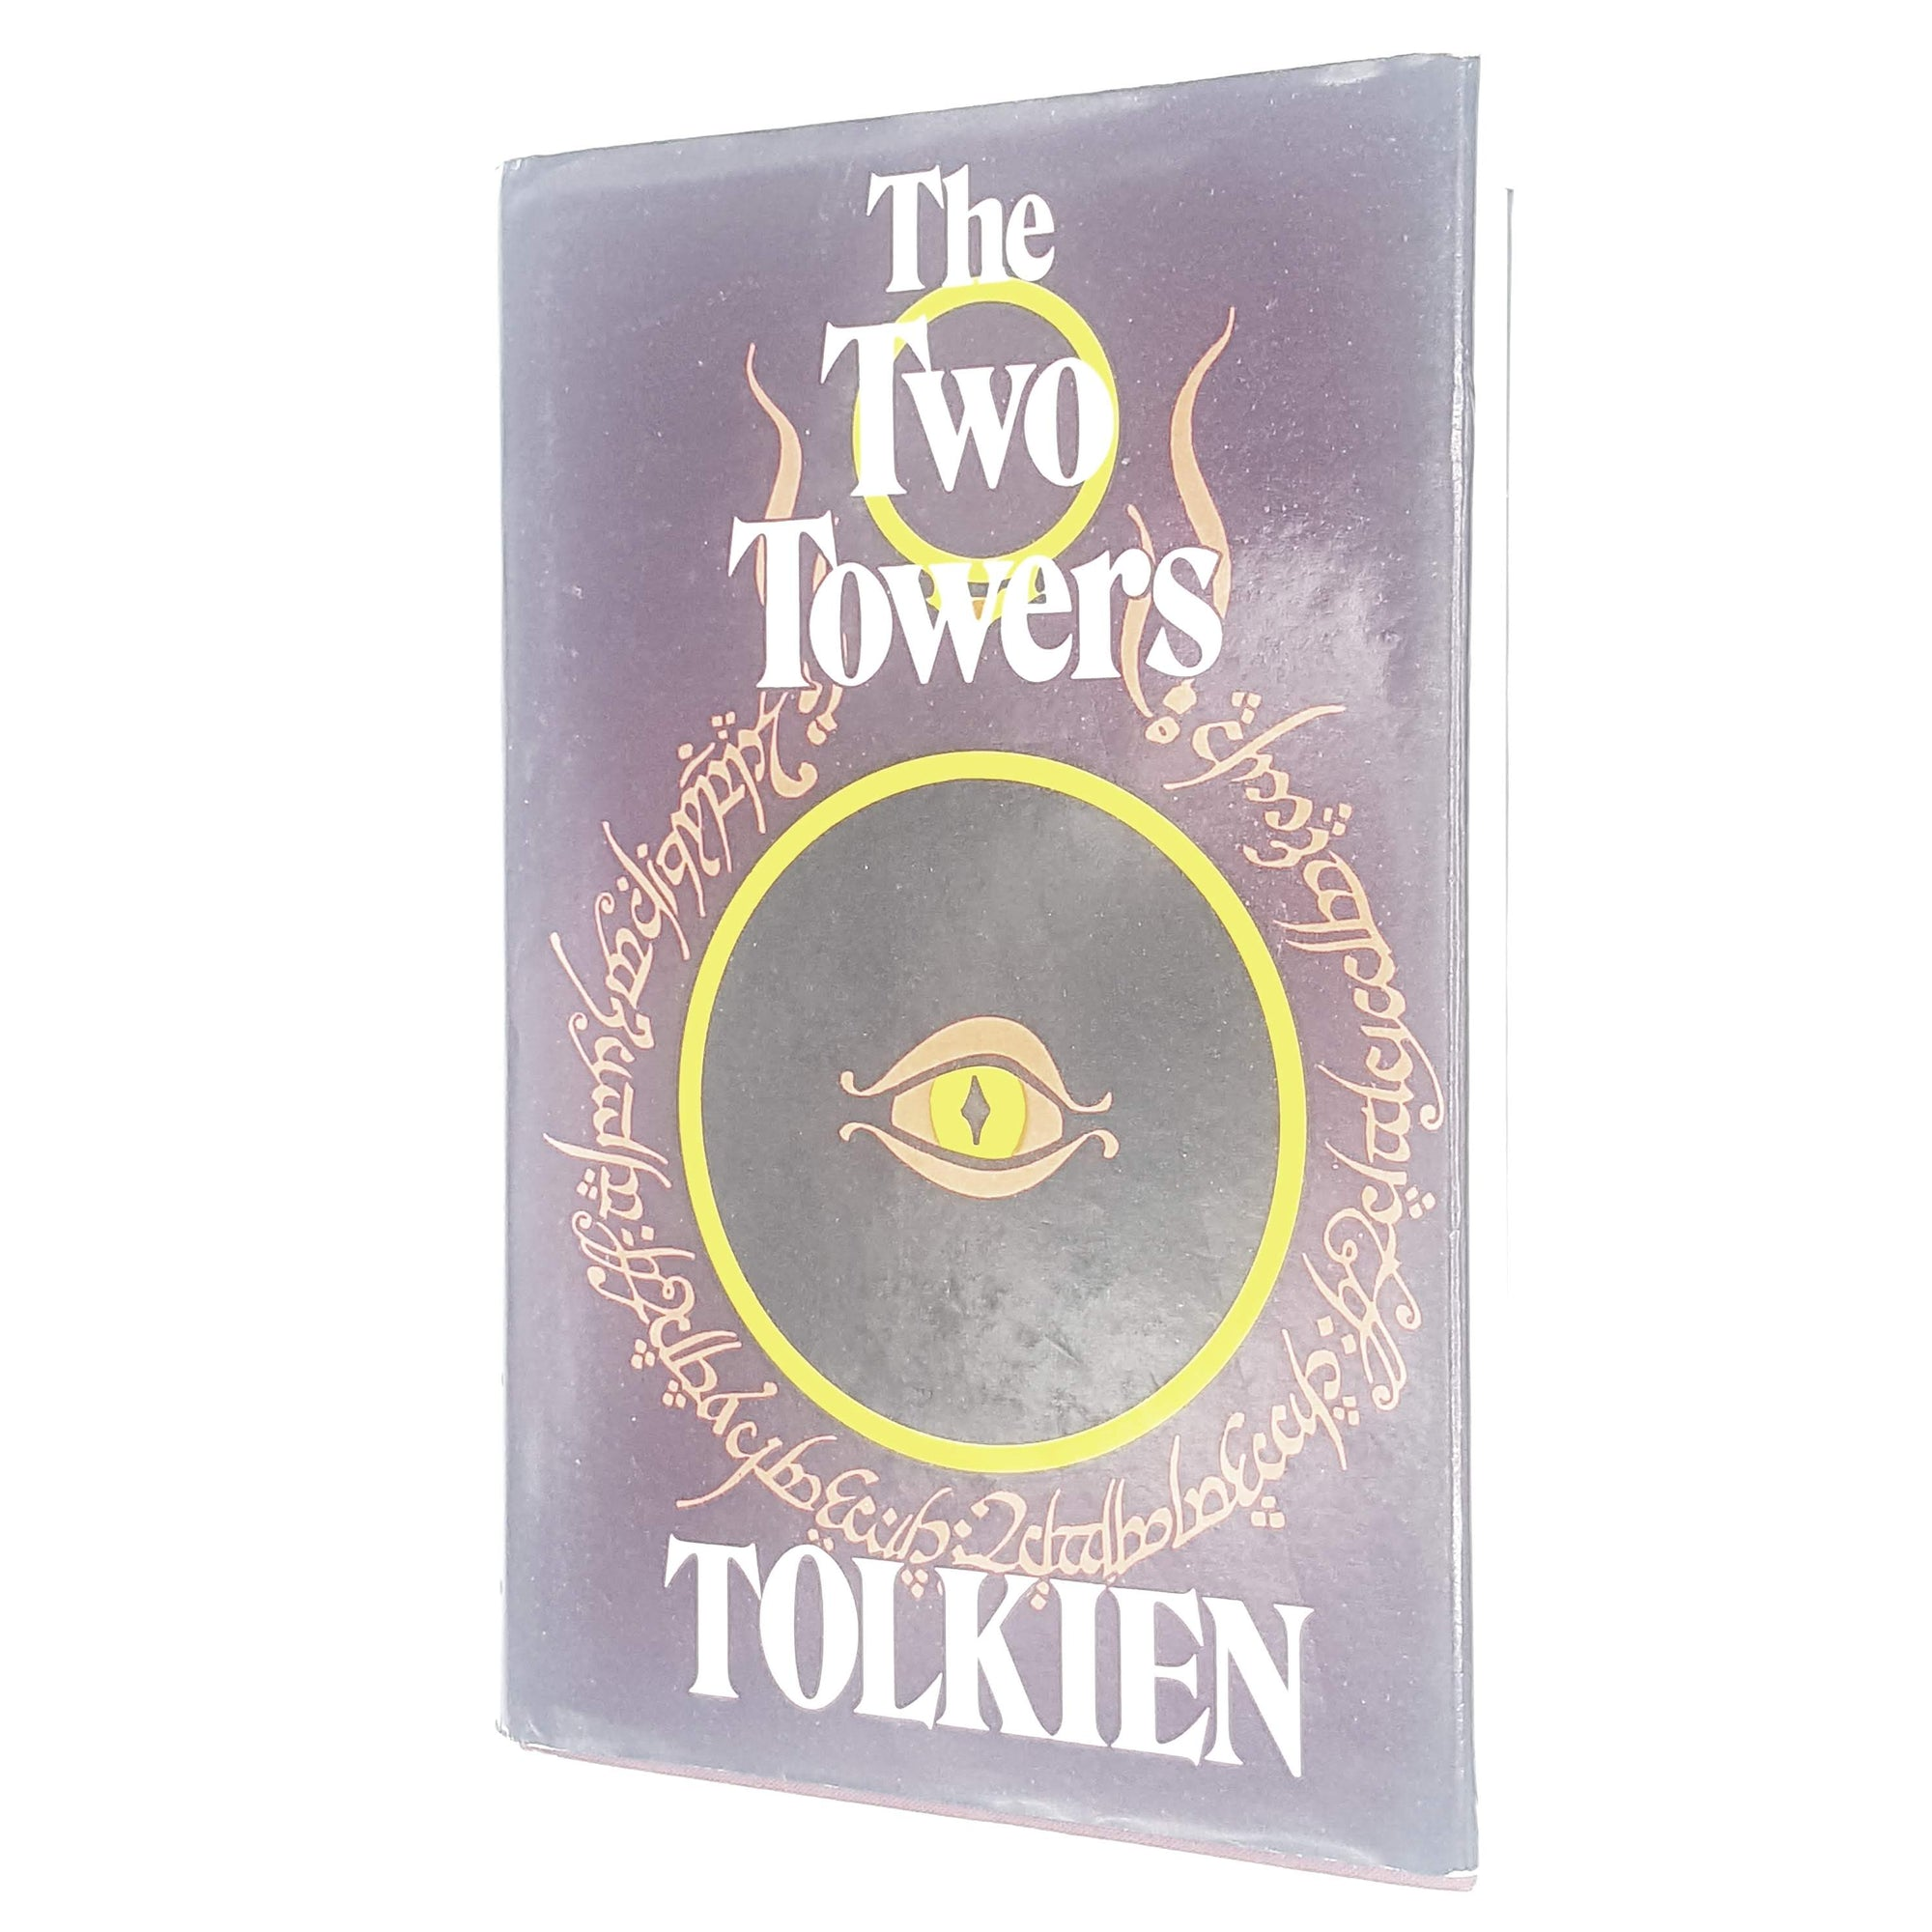 Tolkien's The Two Towers 1978